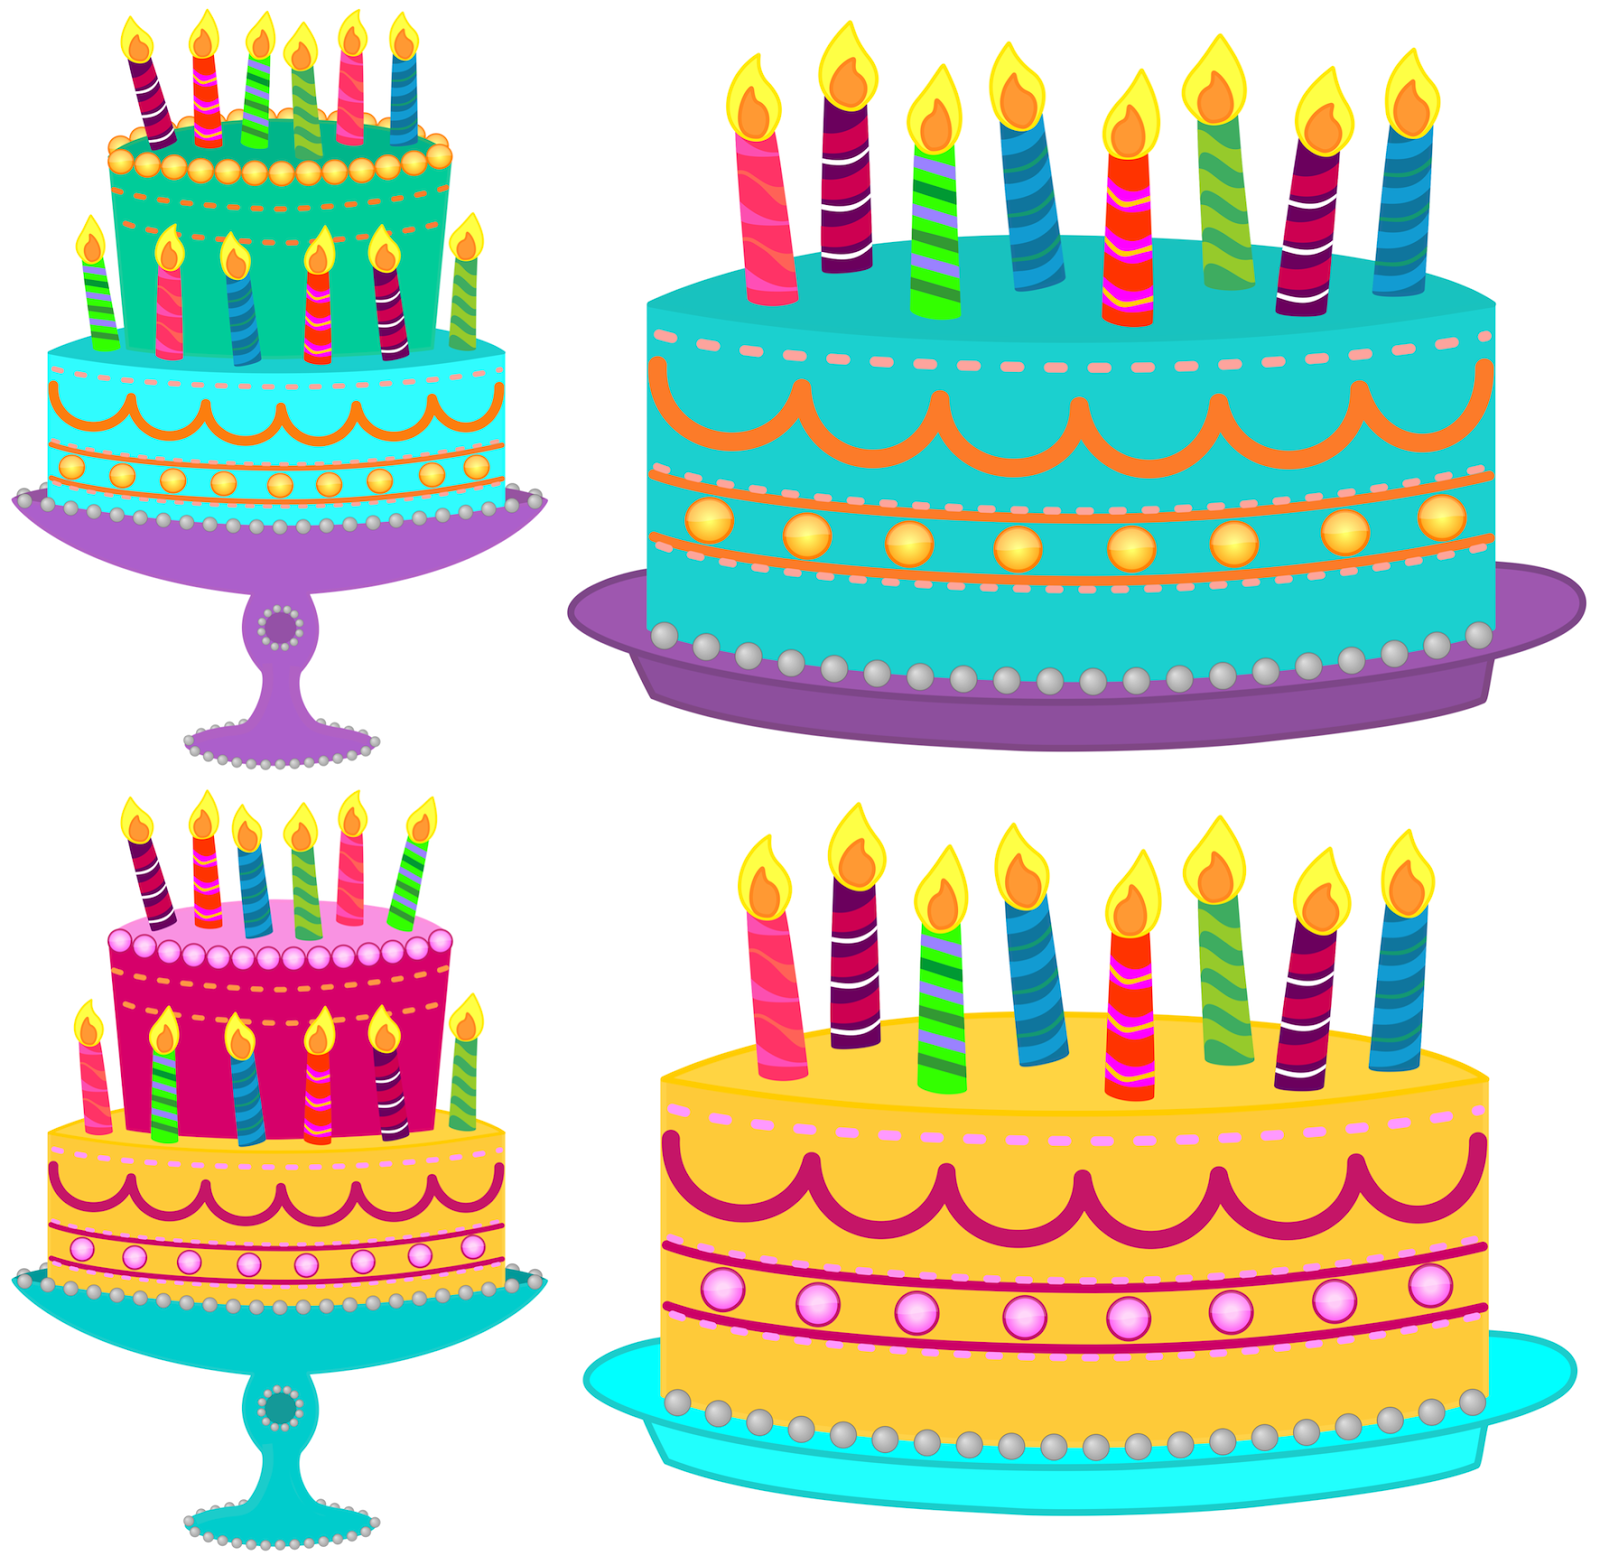 Birthday cake clipart 5 – Gclipart.com jpg royalty free download